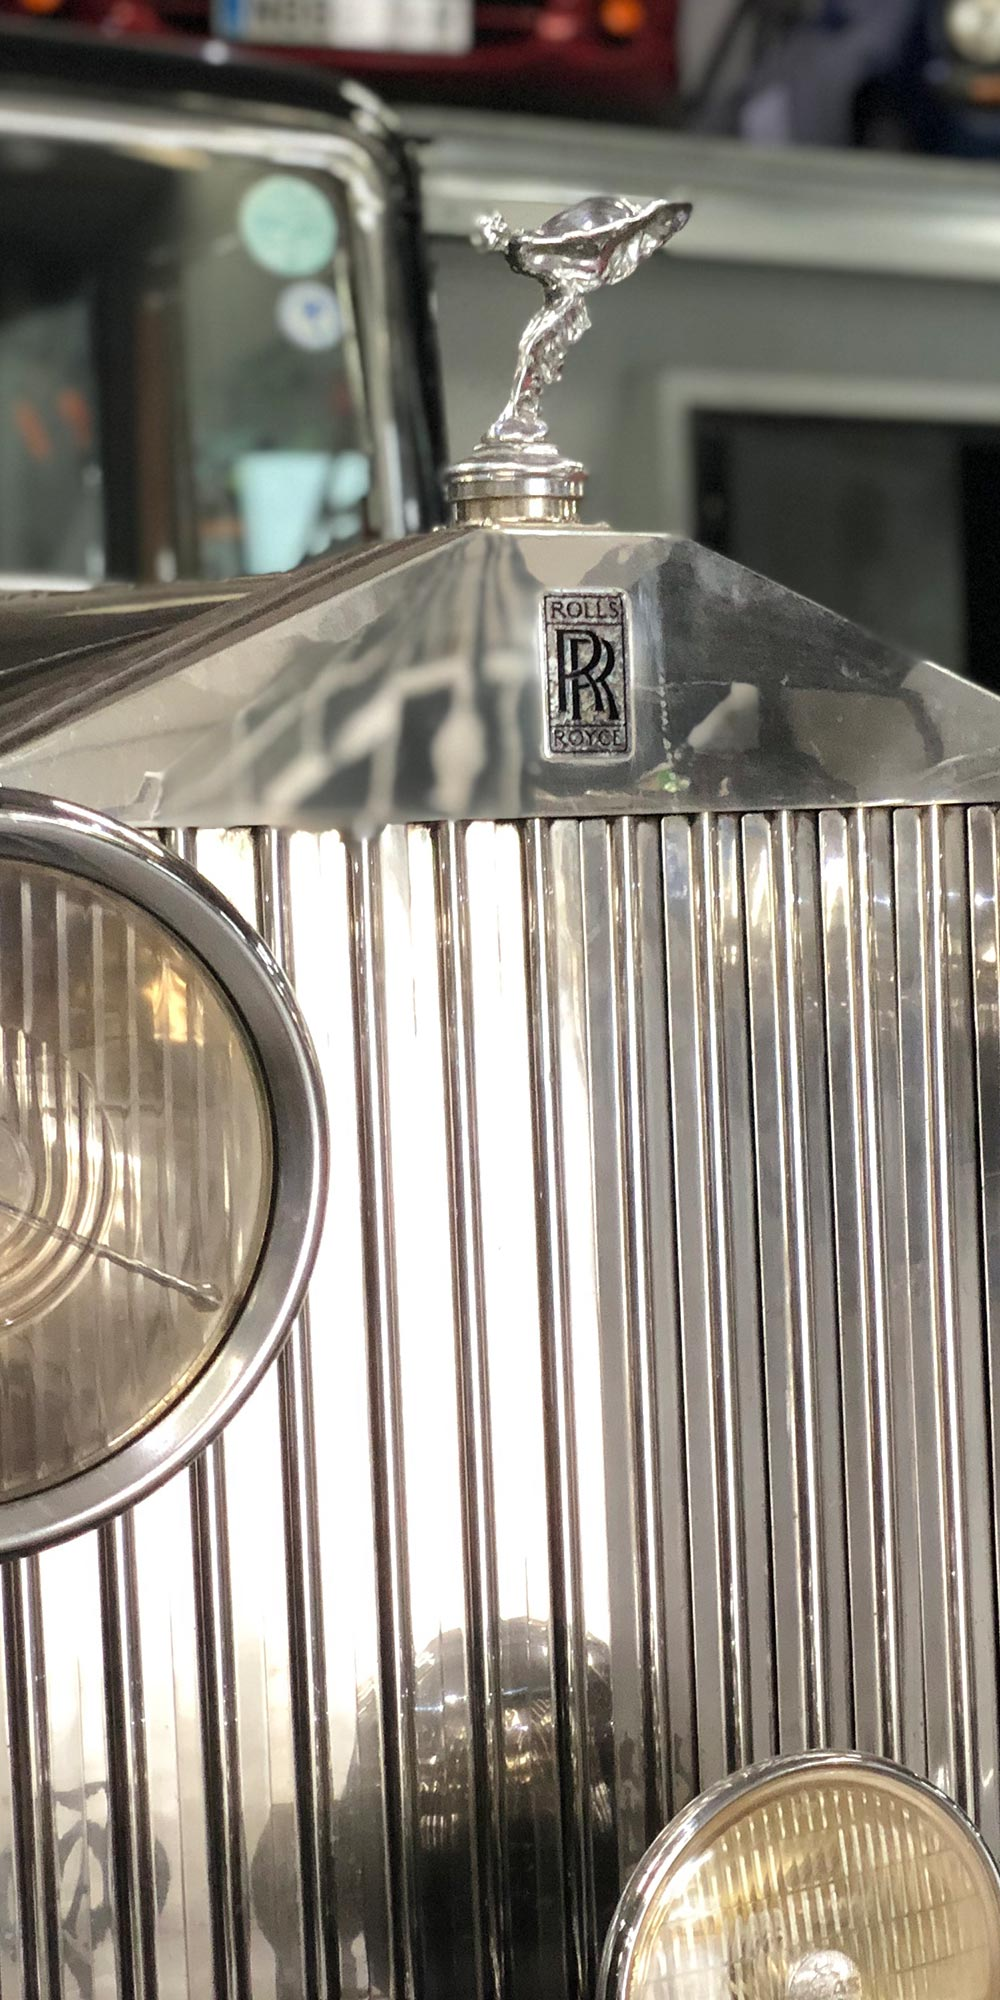 close up of rolls royce radiator grill and emblem